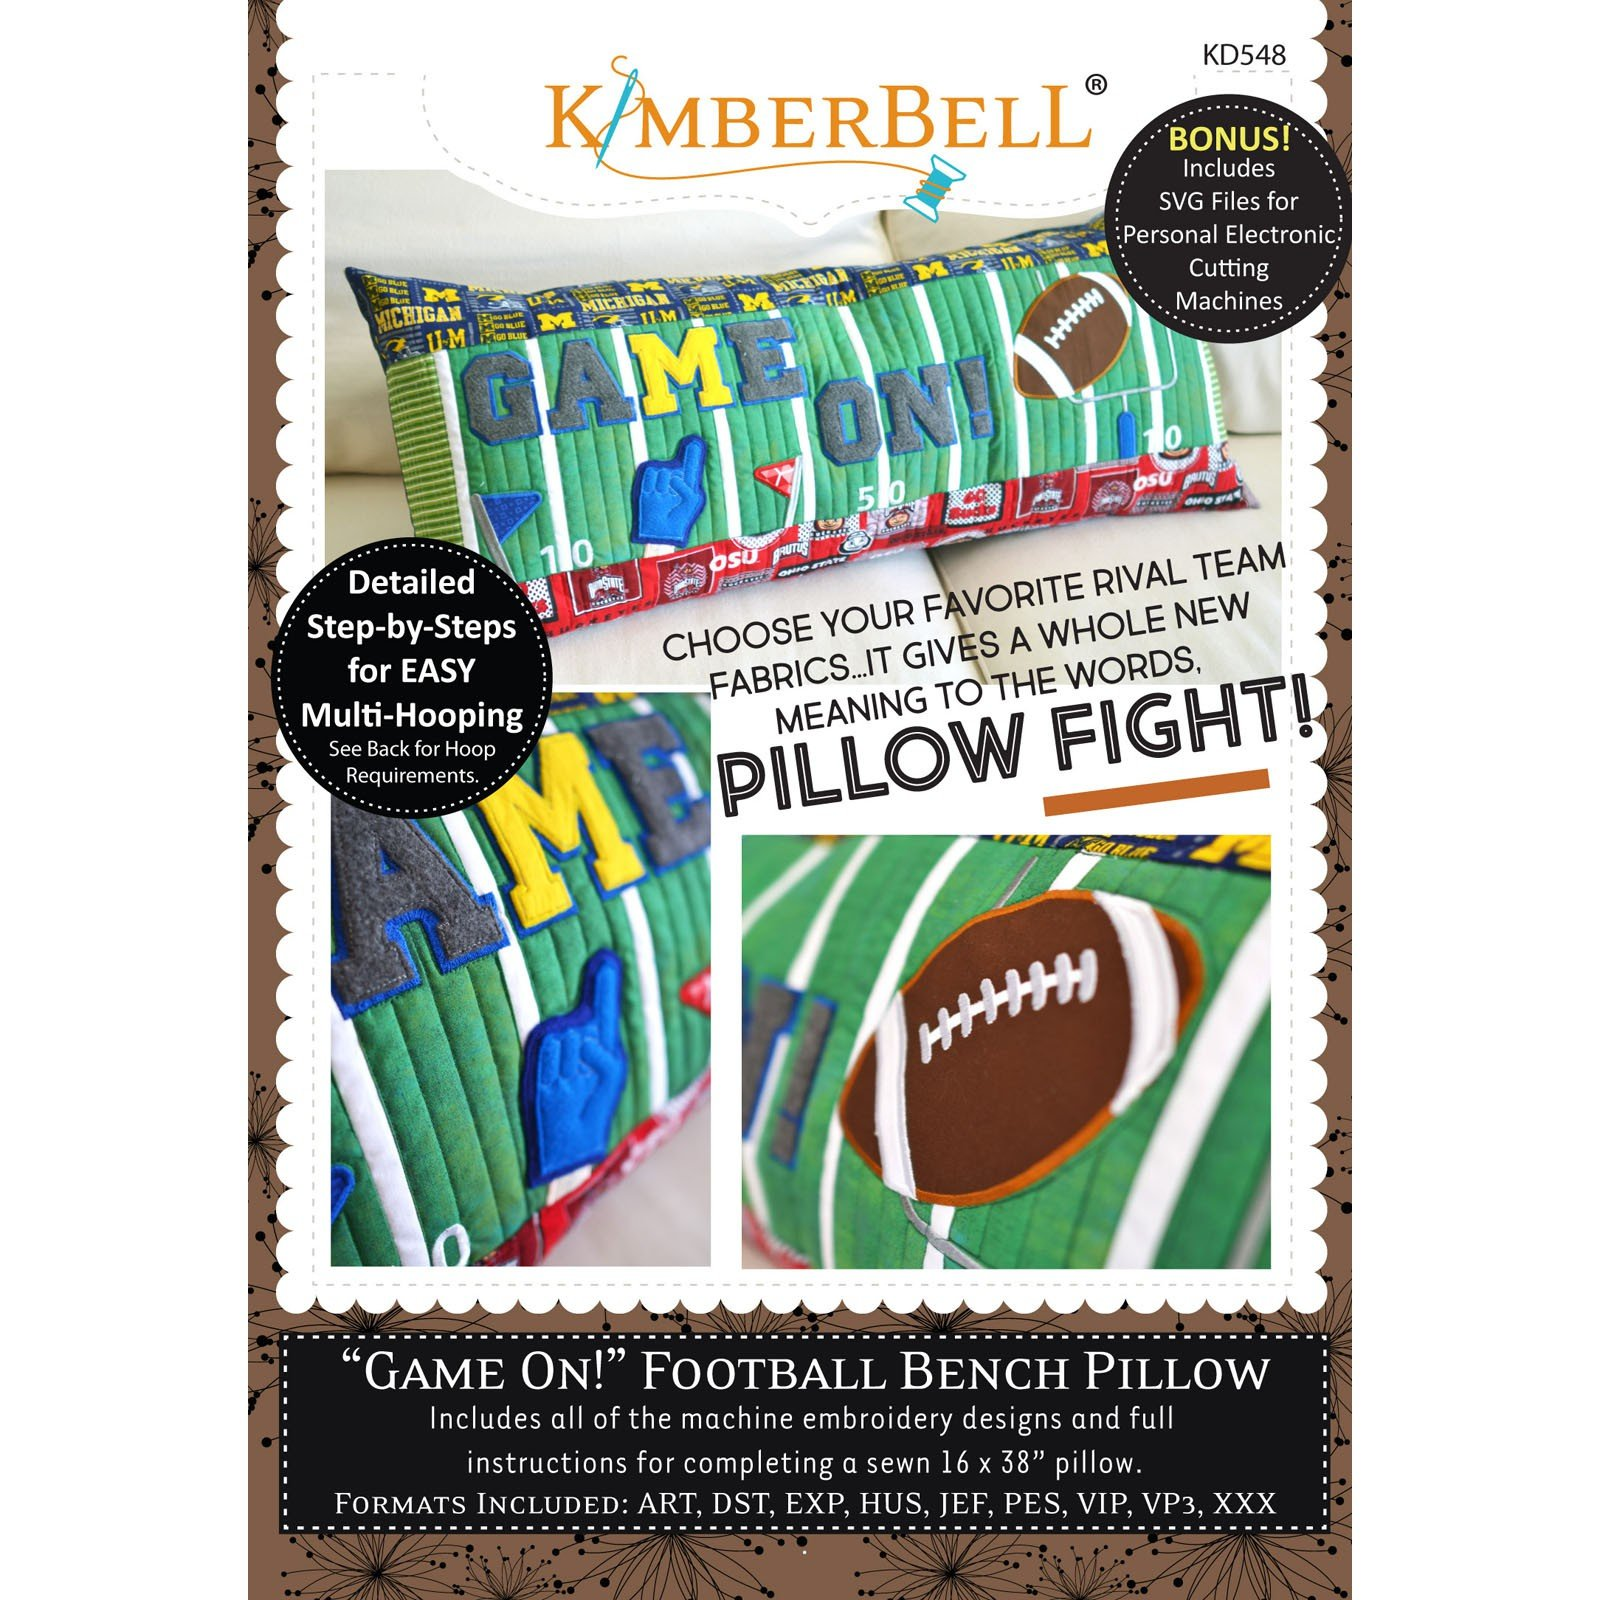 Game On! Football Bench Pillow (Embroidery CD) by Kimberbell